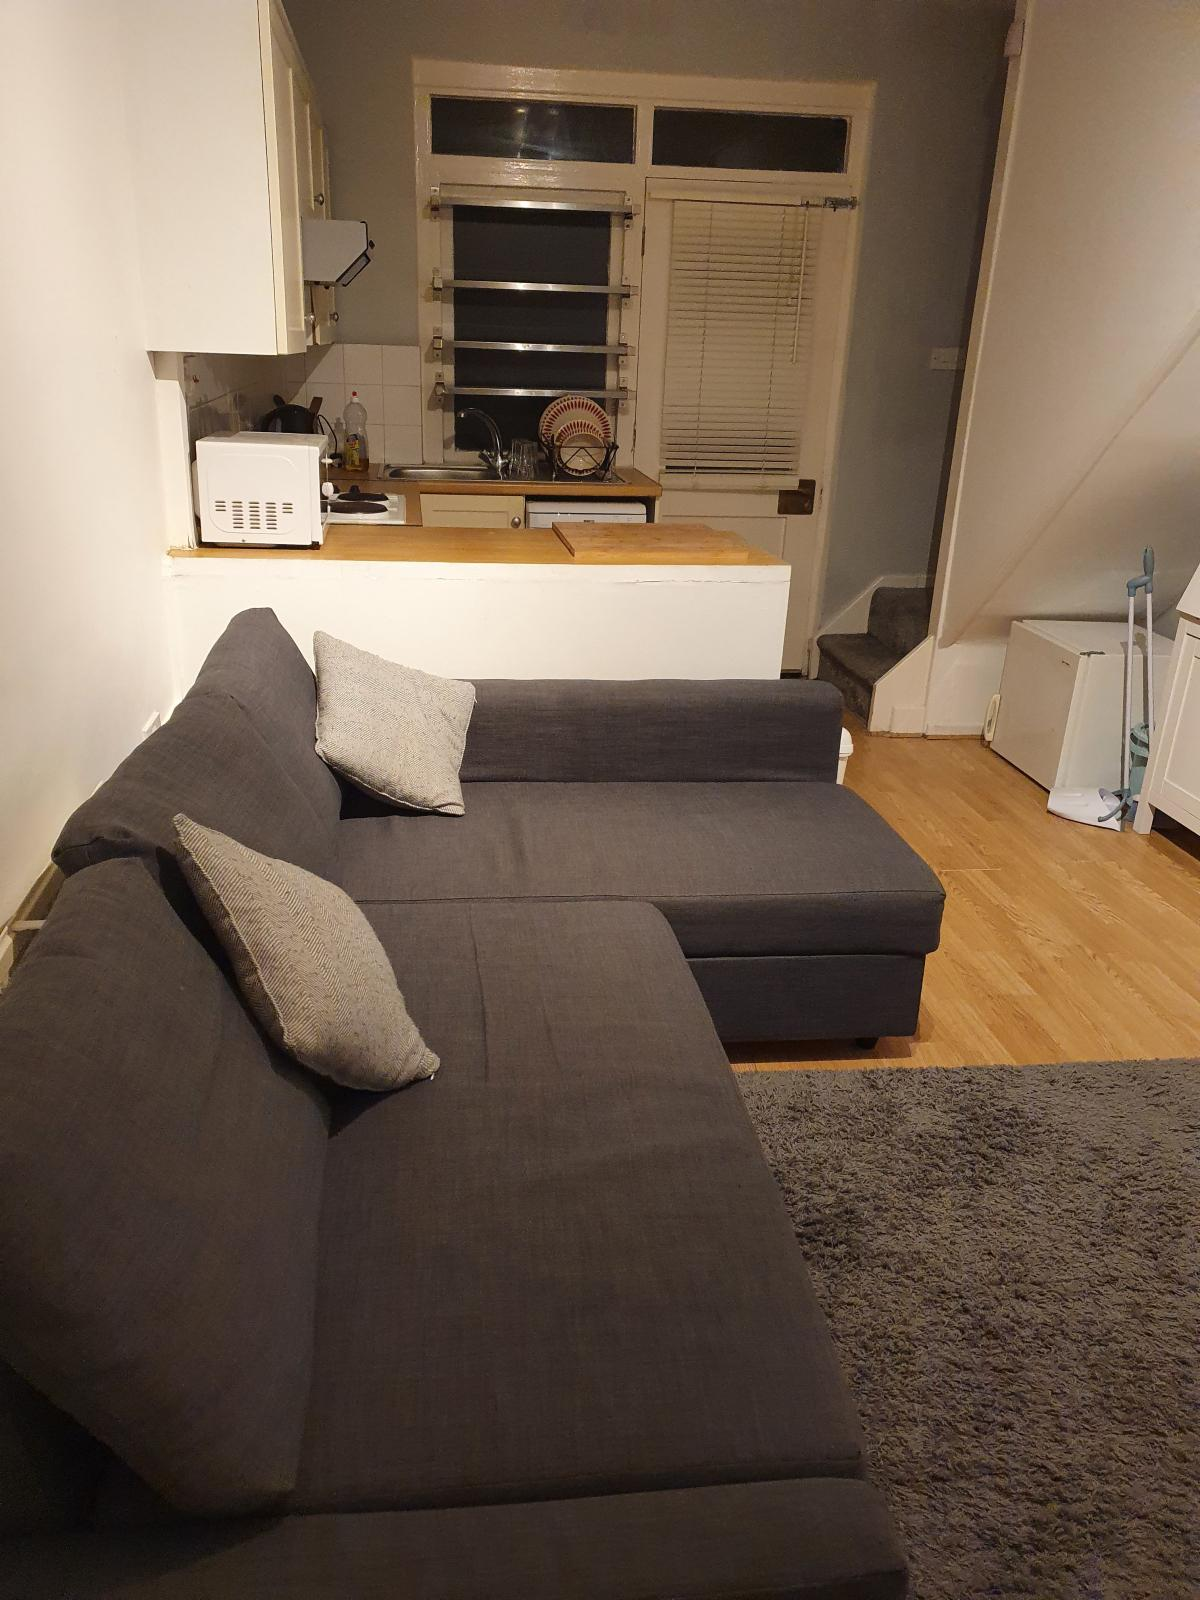 Available 1 Bedroom Flat in Manchester city centre, M3